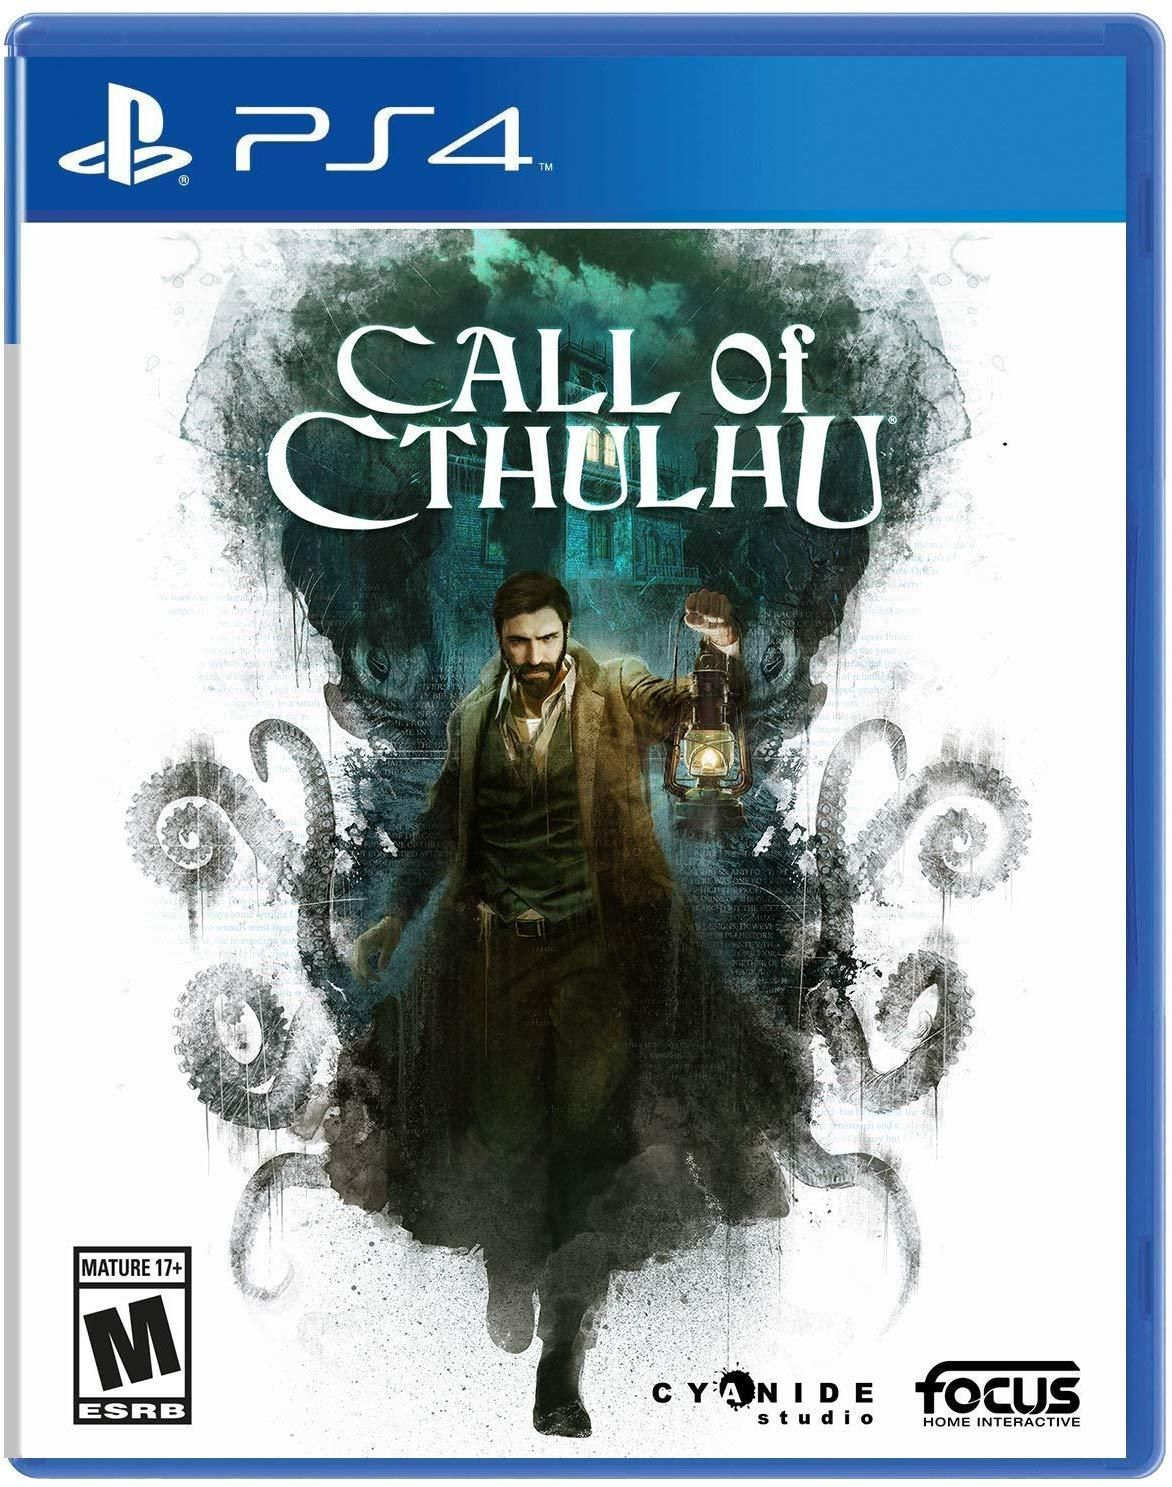 Call Of Cthulhu Playstation 4 In 2018 Products